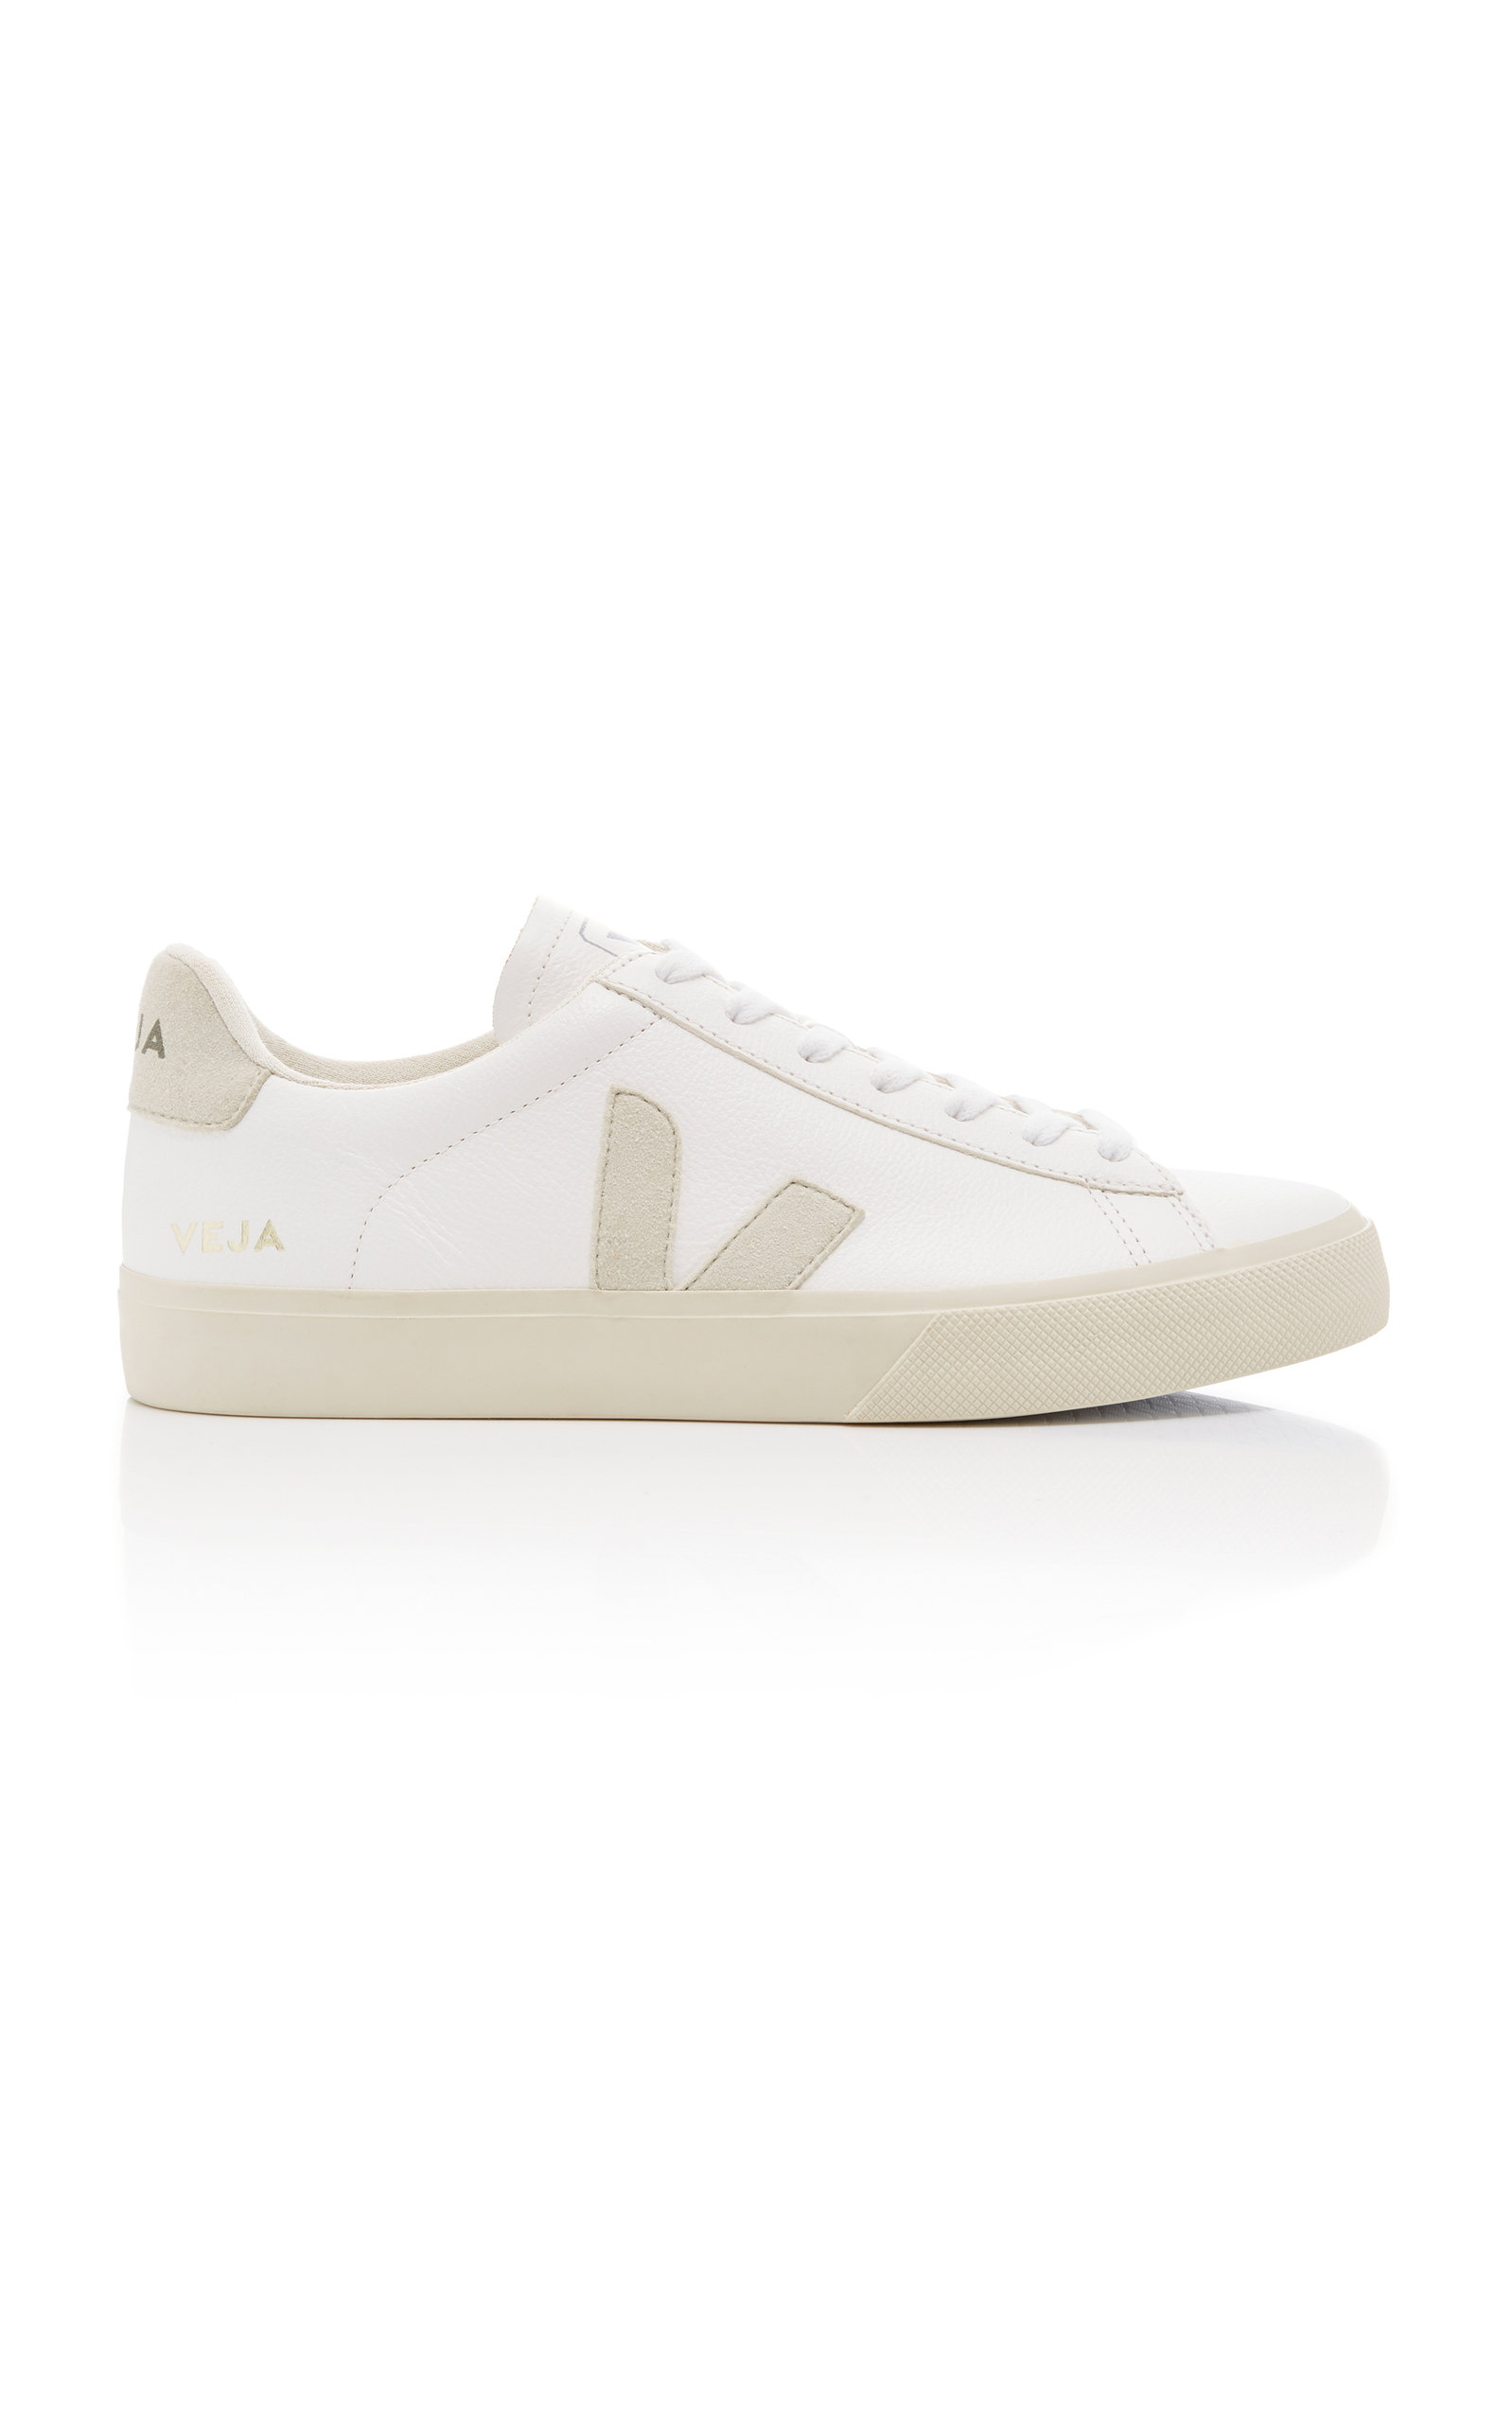 Veja Sneakers Campo Leather Sneakers